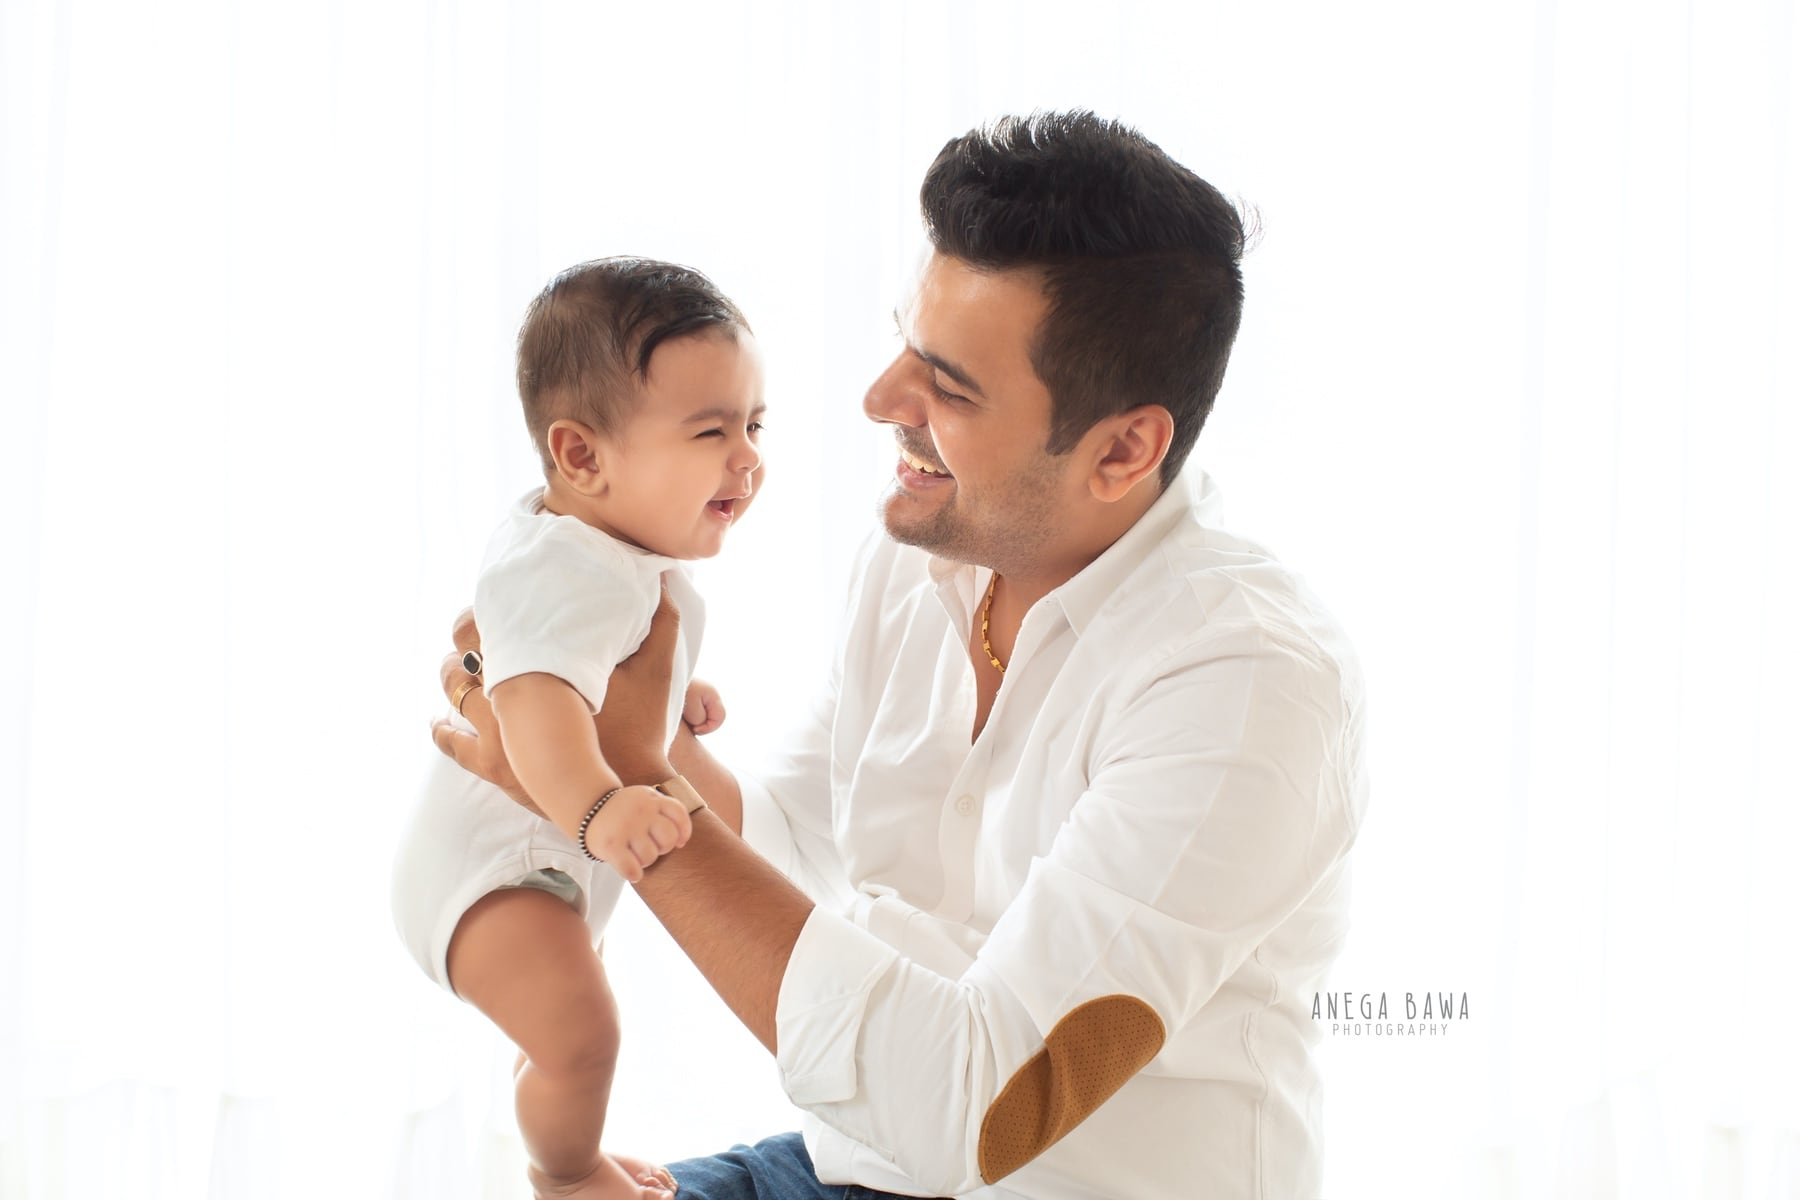 244708-white-background-father-and-baby-photography-delhi-5-6-7-months-baby-photoshoot-gurgaon-anega-bawa